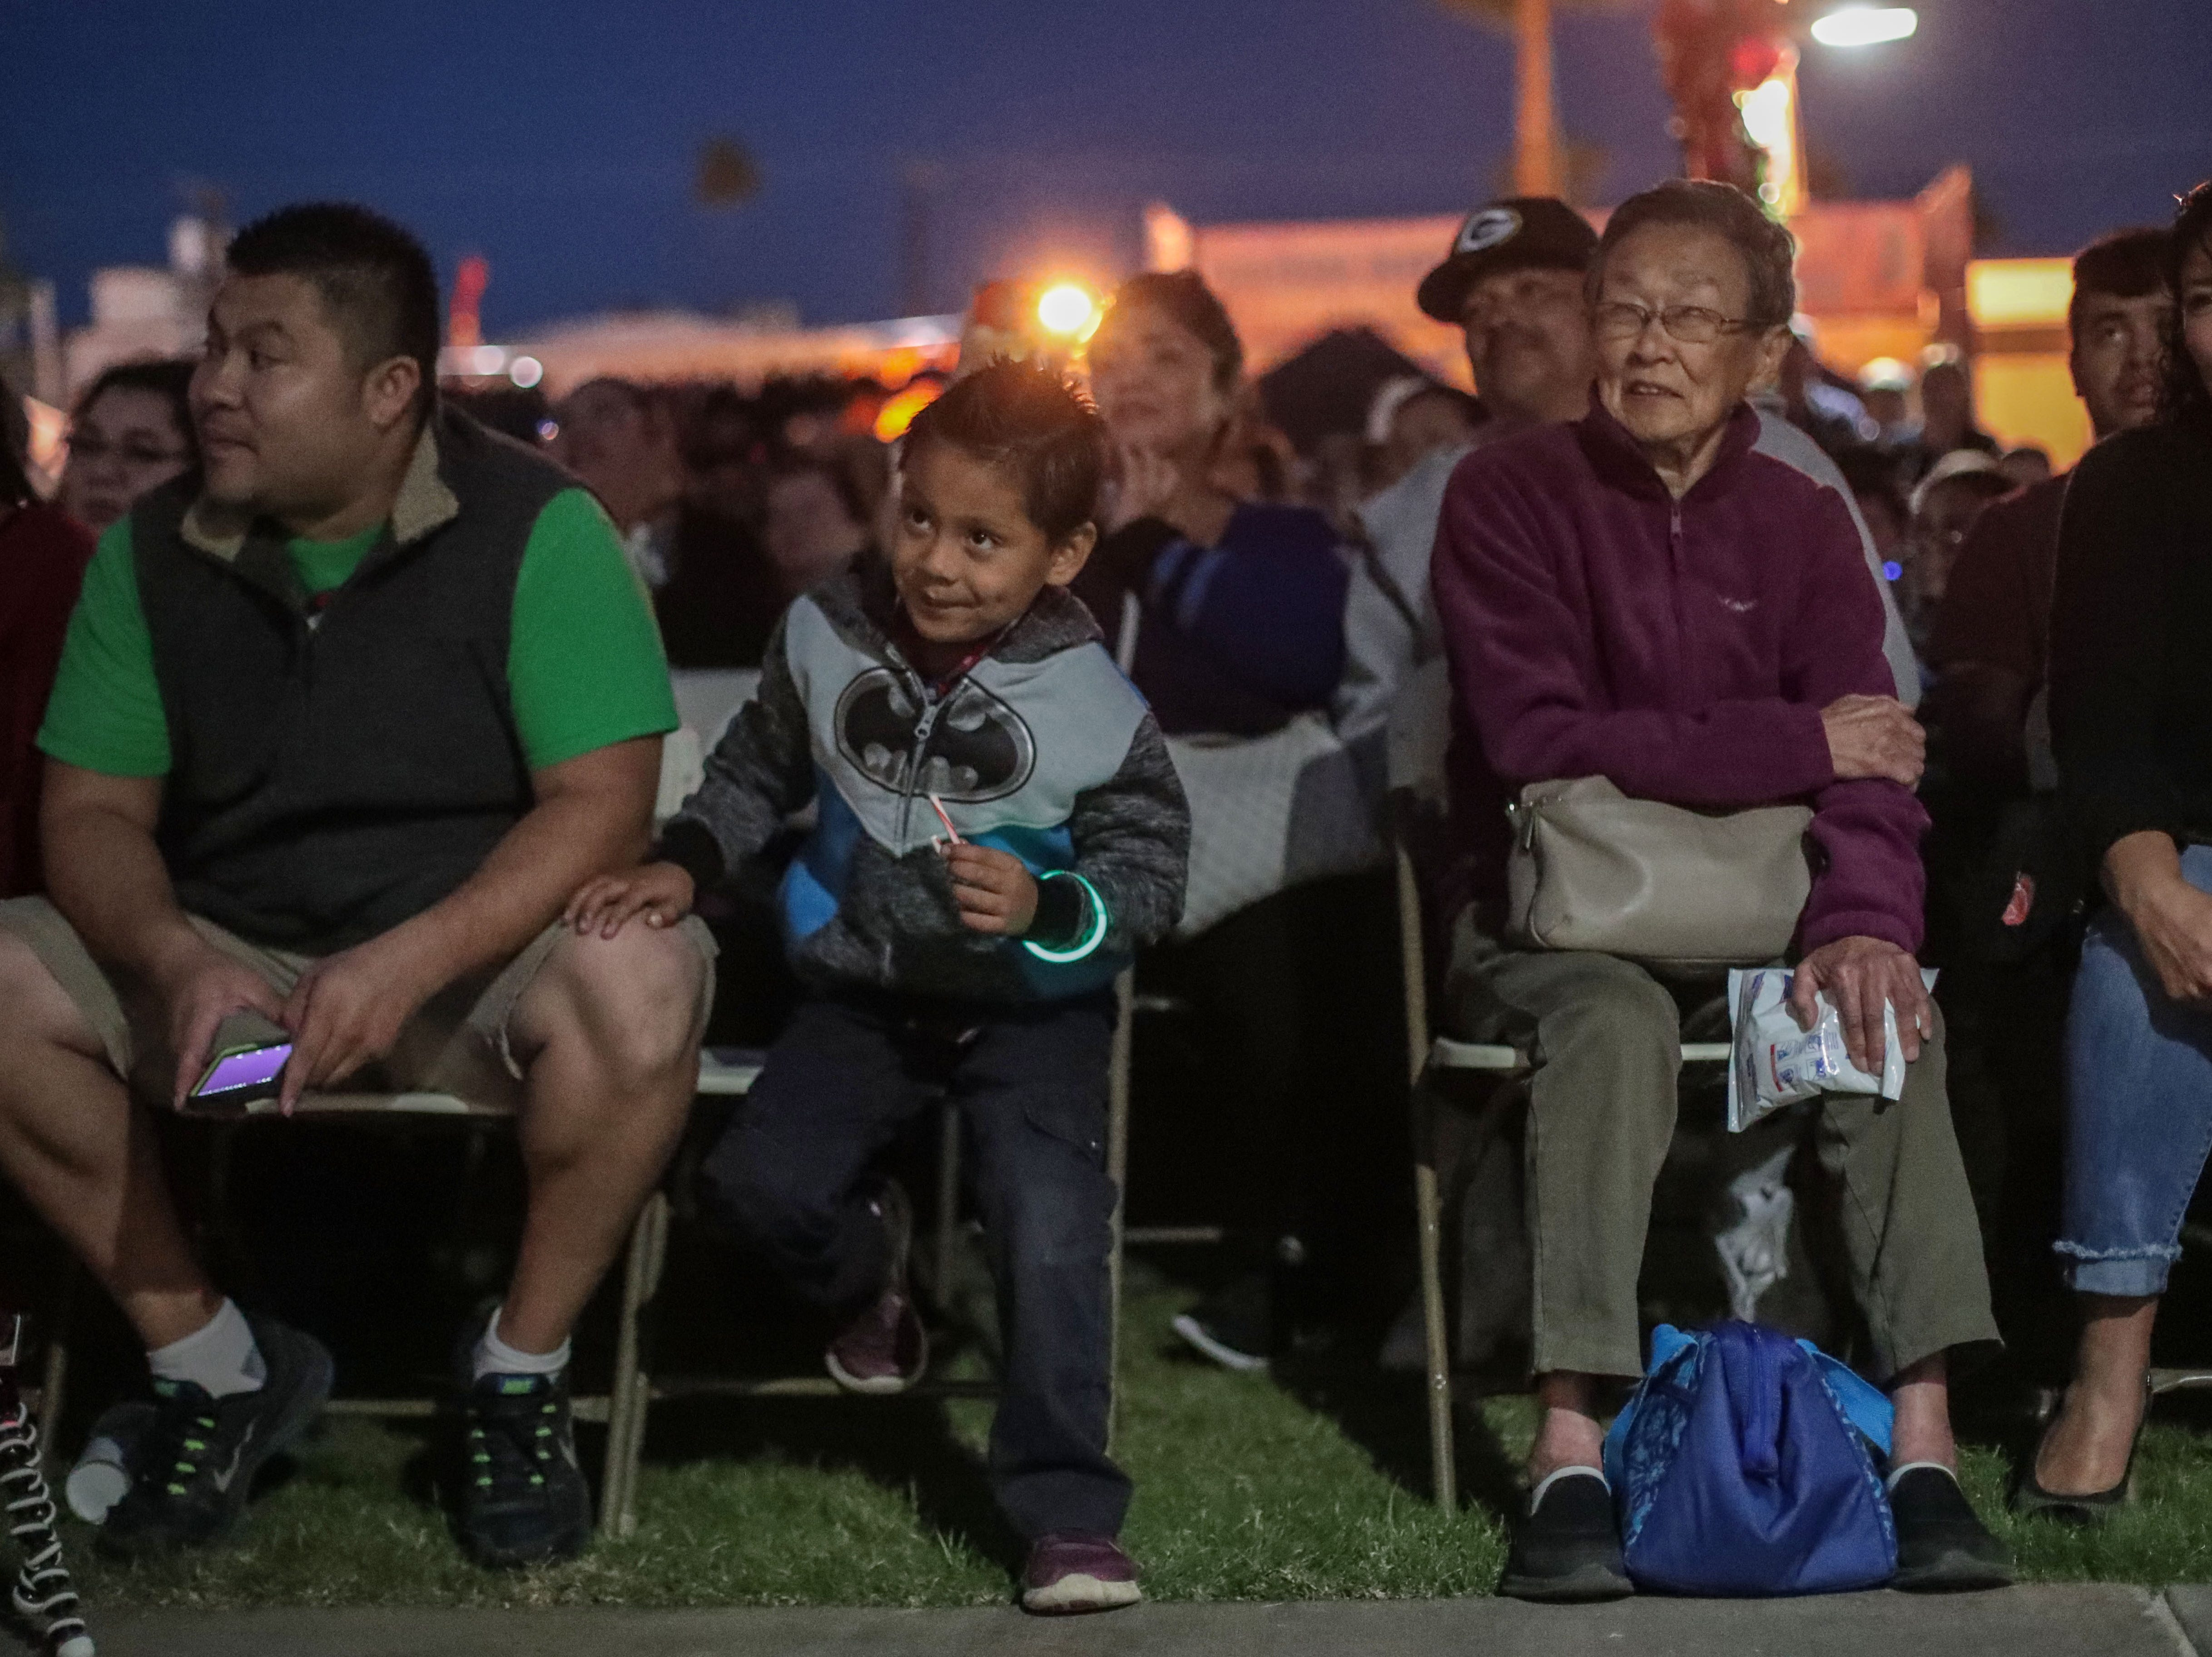 Families anticipate the lighting of City of Indio's Christmas tree on Saturday, December 1, 2018 in Indio.